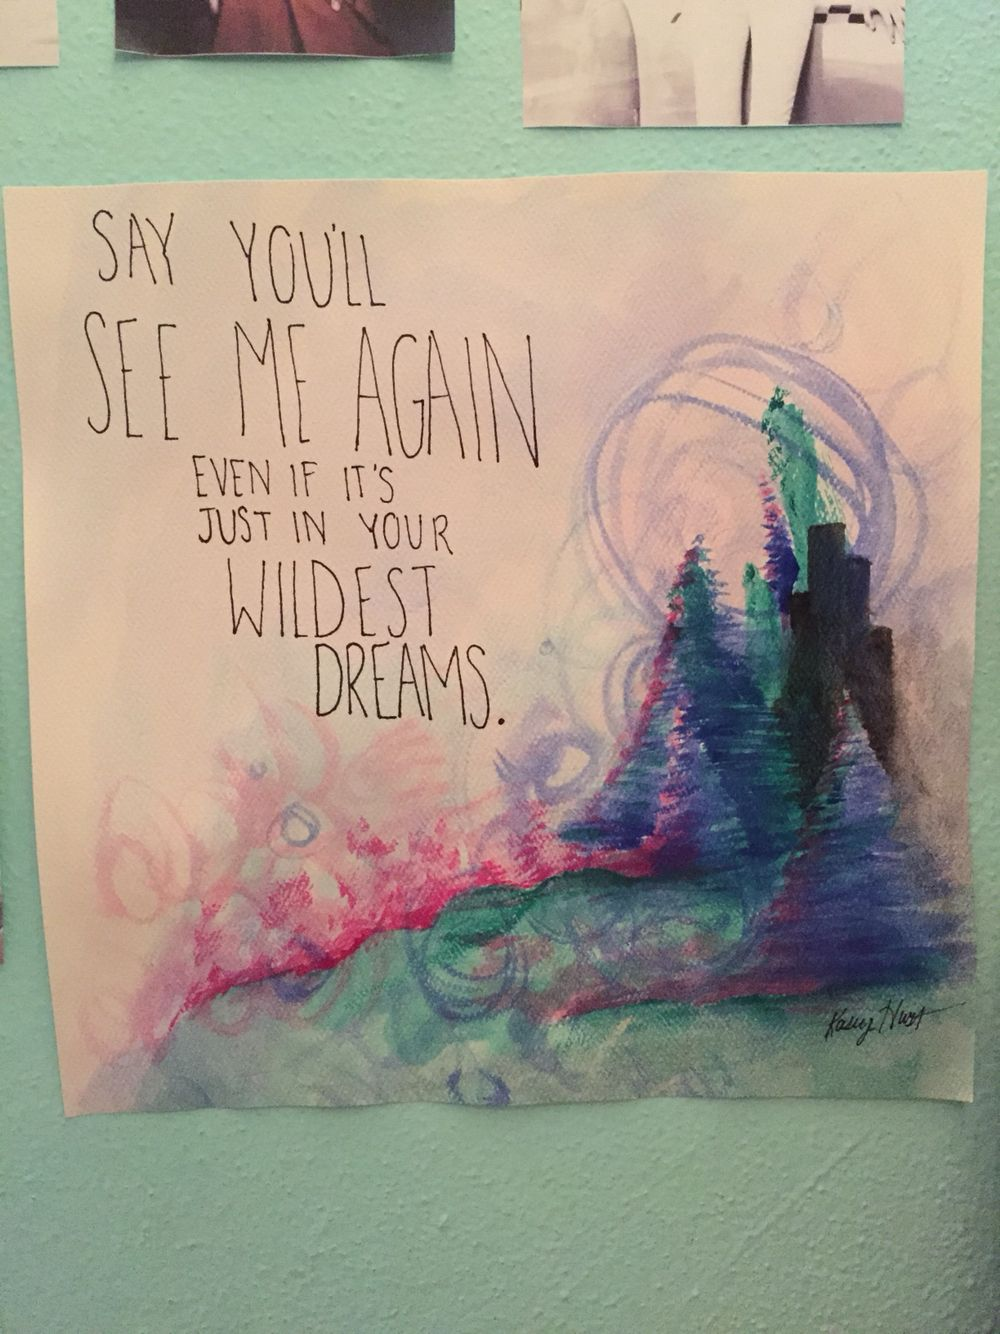 Taylor Swift Lyrics Watercolor Taylor Swift Lyrics Taylor Swift Song Lyrics Taylor Swift Songs